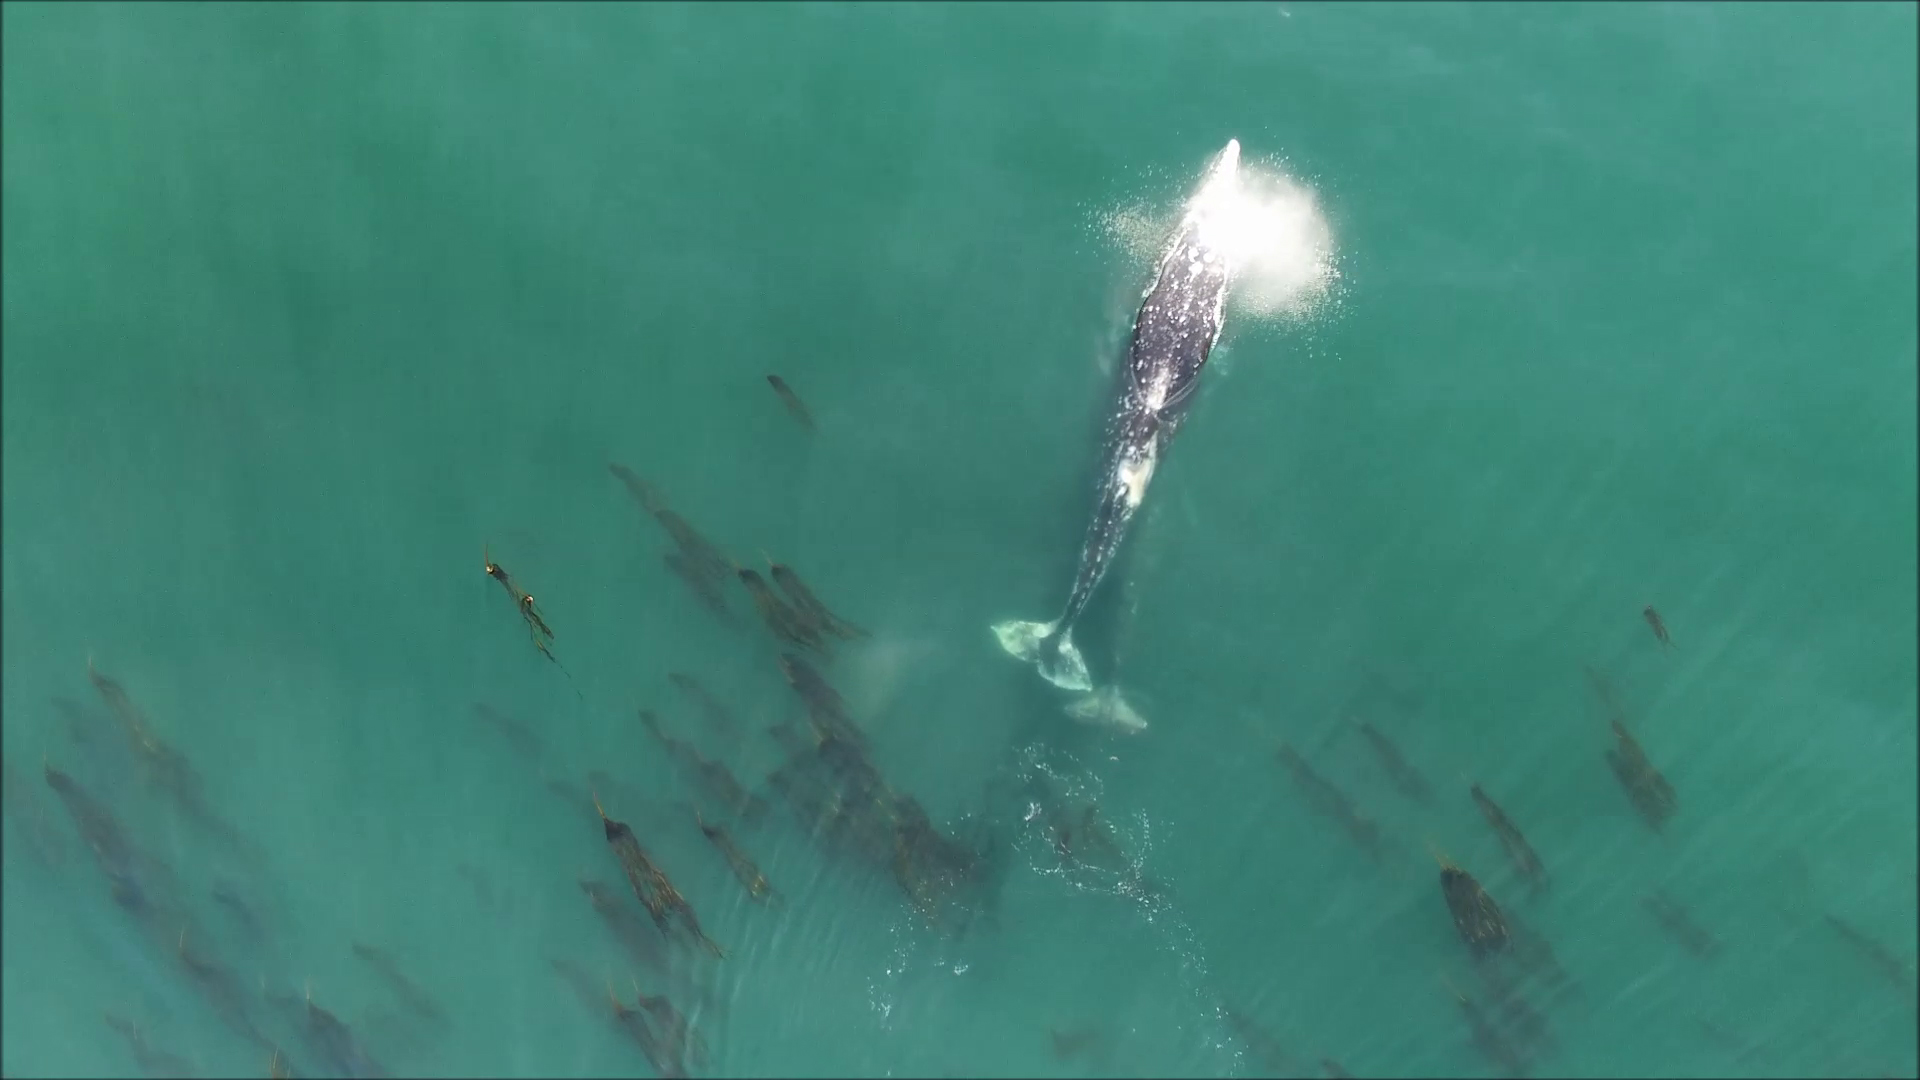 OSU Prof Uses Drones, GoPros to Track Oregon Gray Whale Behavior, Poop